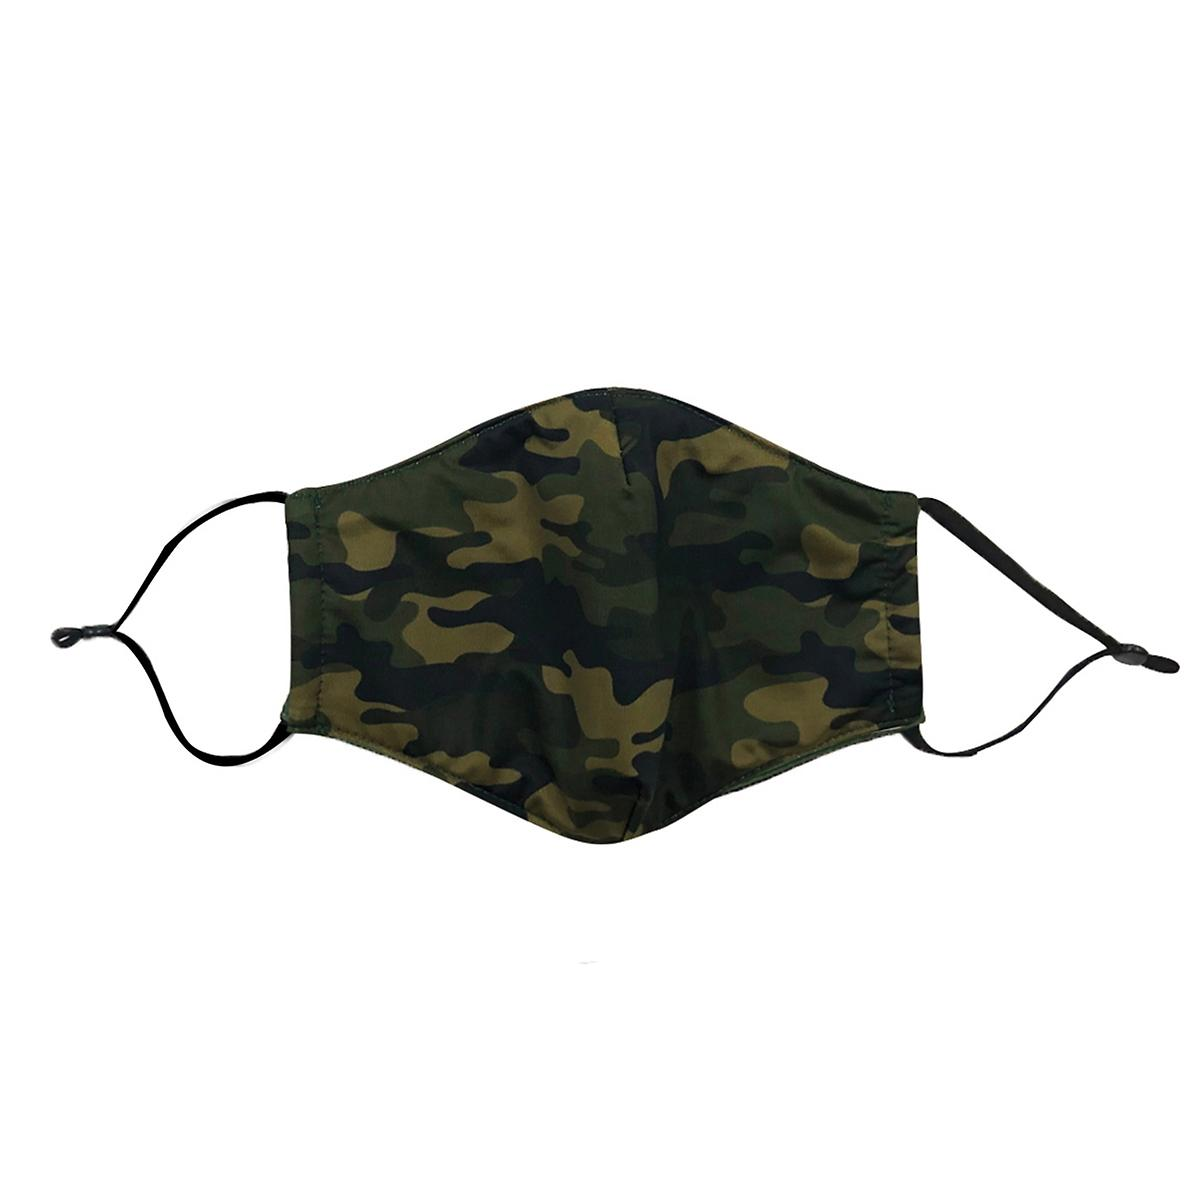 Green Camo Care Cover Face Mask